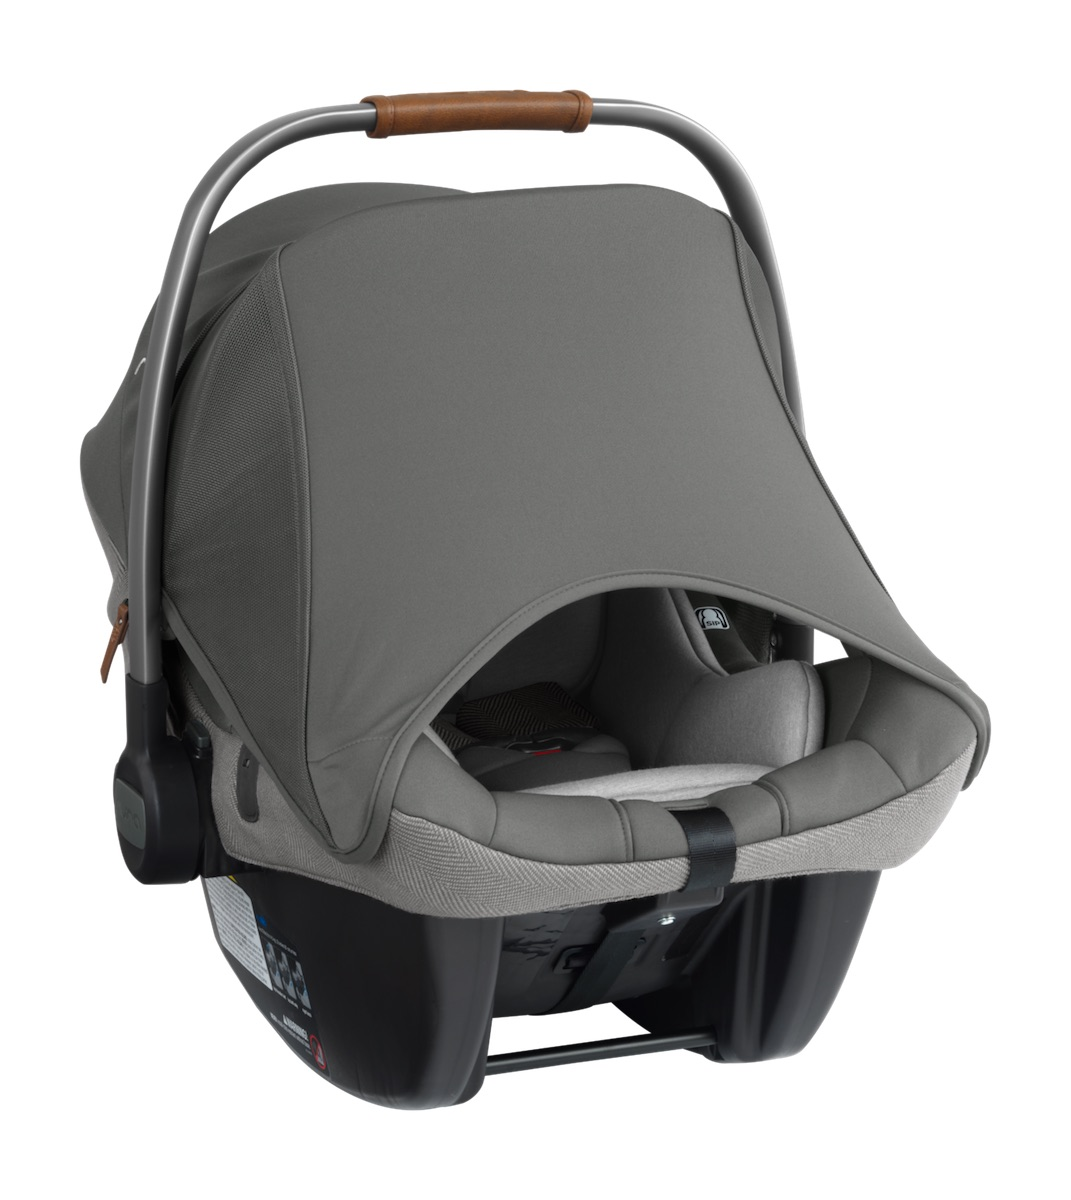 NUNA 2020 PIPA lite LX with Base - Oxford